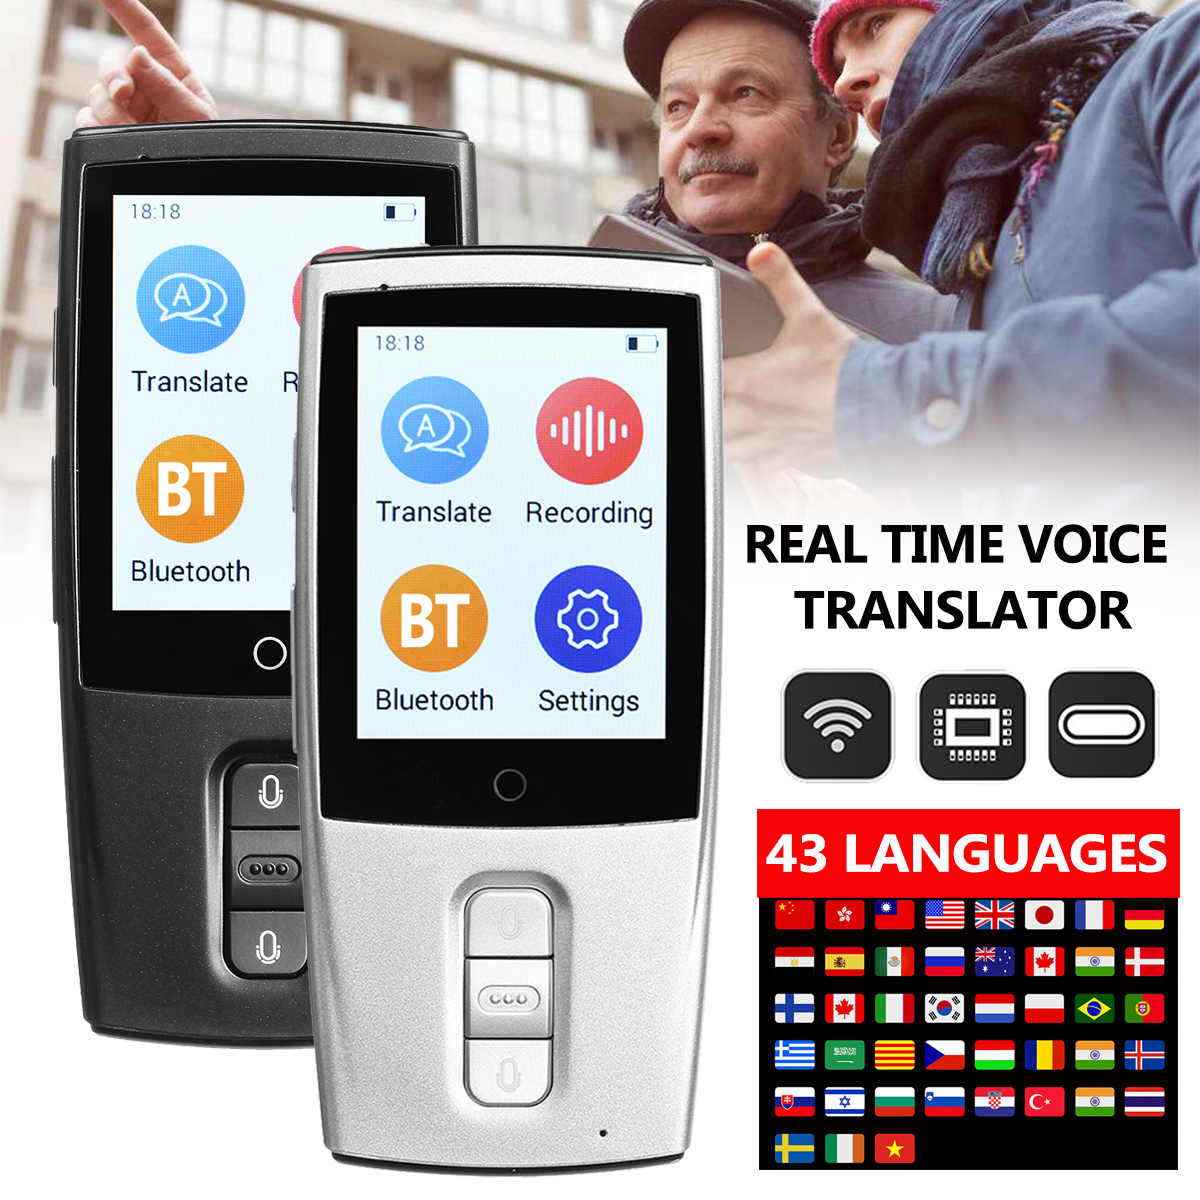 Portable Smart Voice Translator Two-Way Real Time WiFi 43 Languages Instant Traductor Translation for Learning Meeting Business